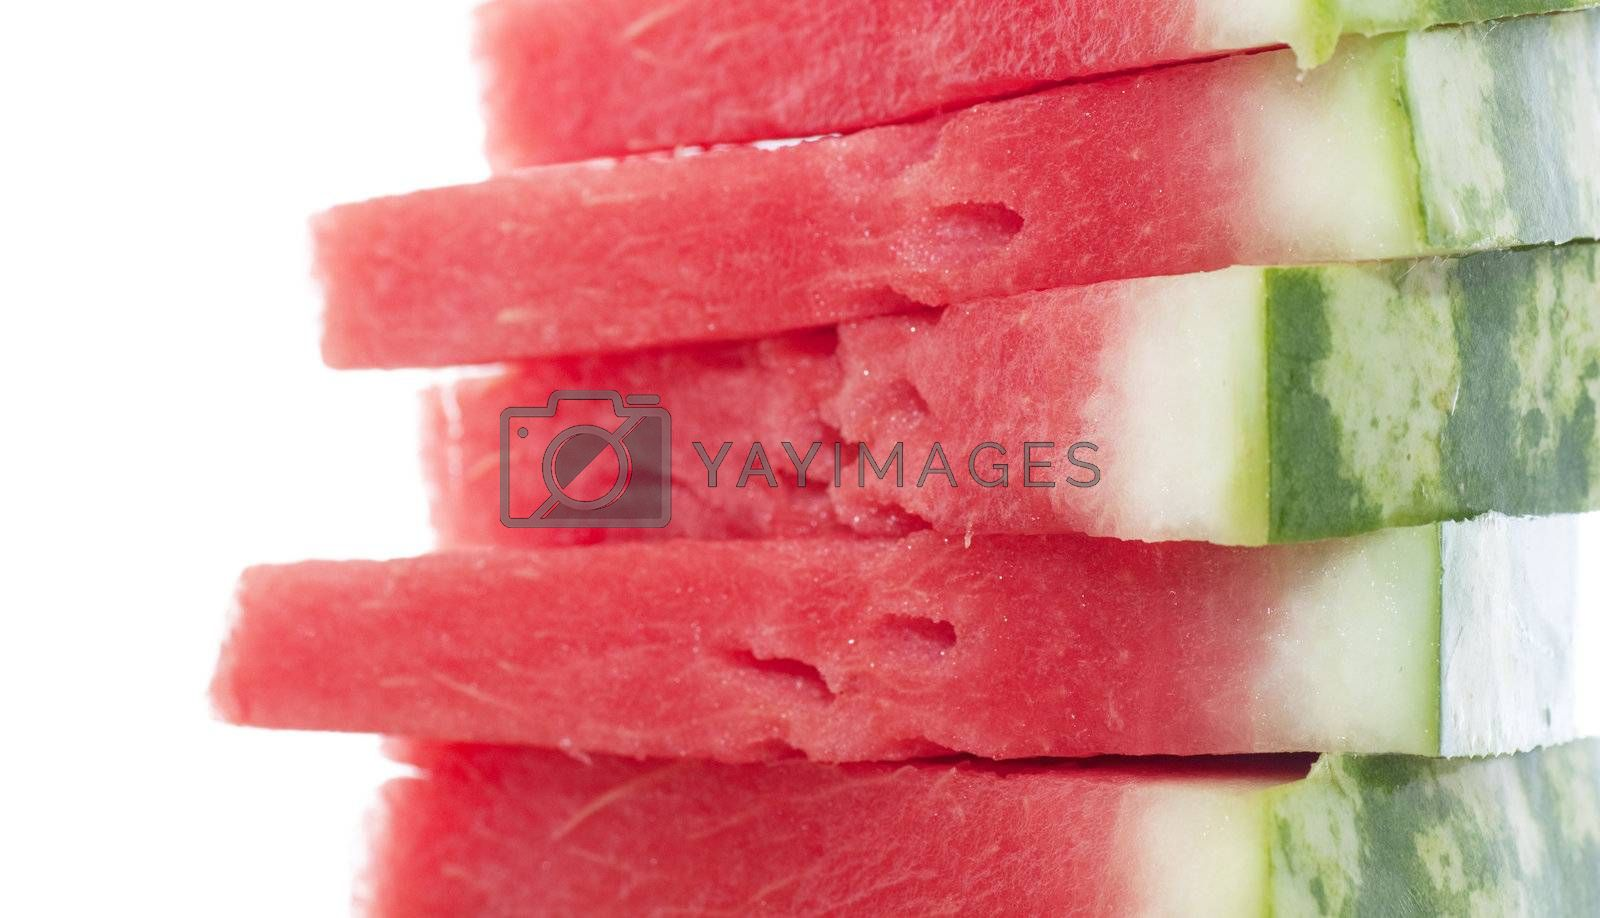 Royalty free image of Stack of fresh slices of watermelon by AGorohov